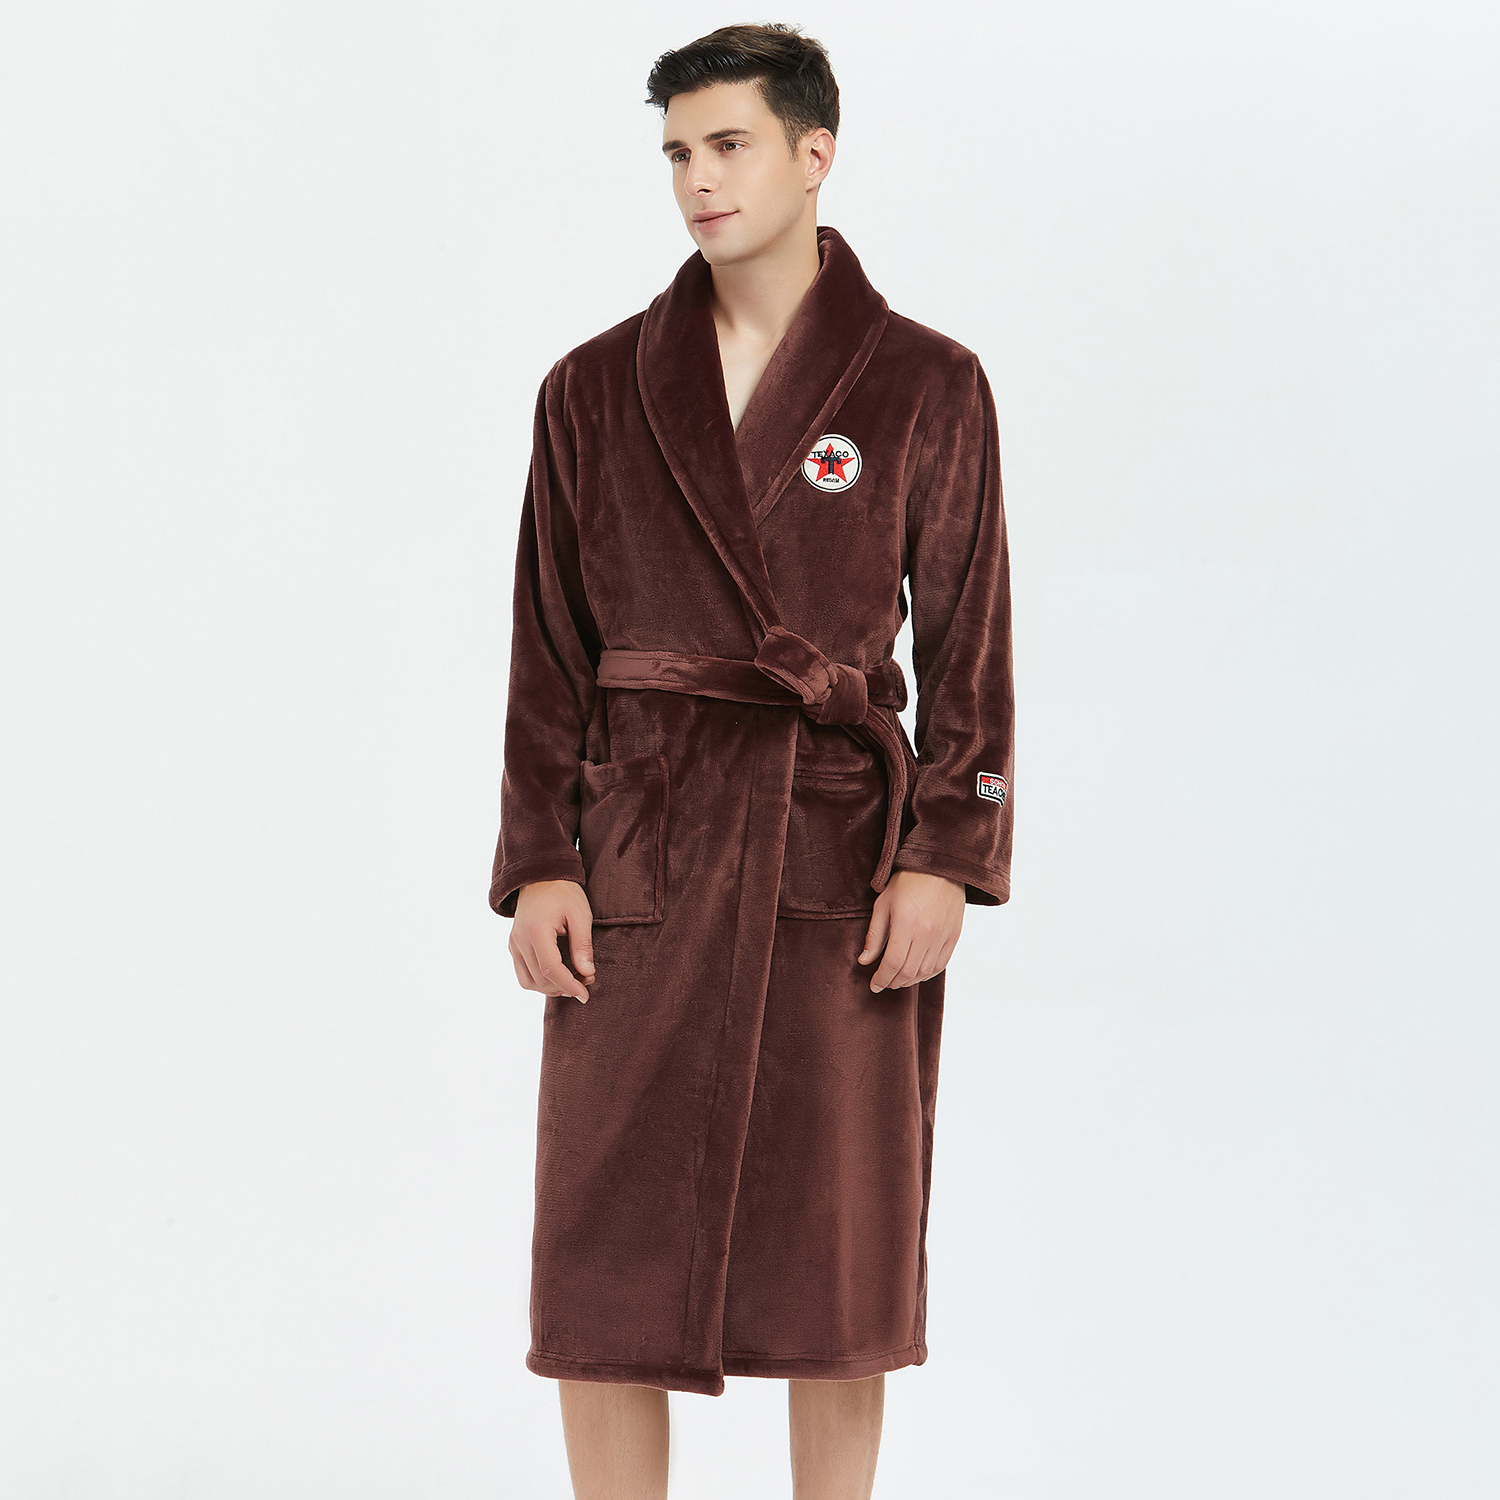 Casual Flannel Men Robe Homewear Soft Nightdress Winter Keep Warm Kimono Bathrobe Gown Sleepwear Flannel Nightwear Nightgown